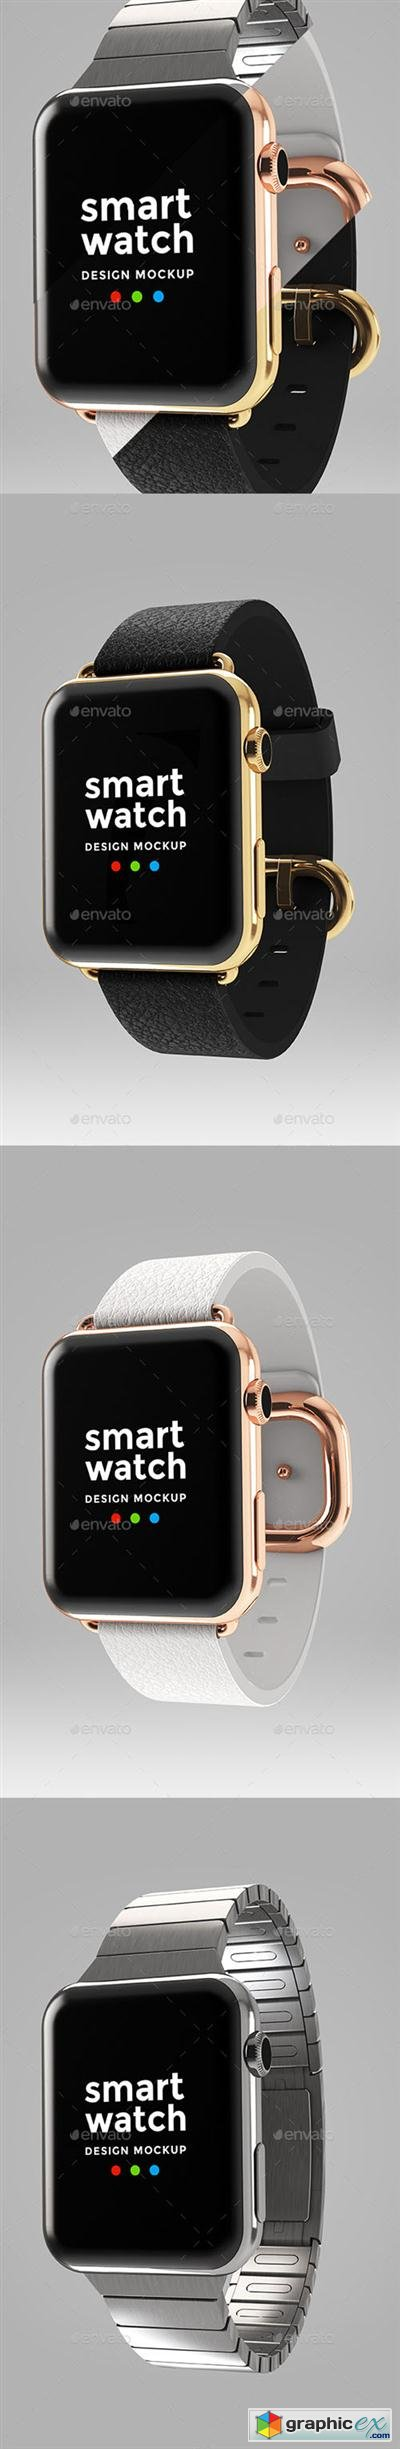 Smart Watch Design Mockup